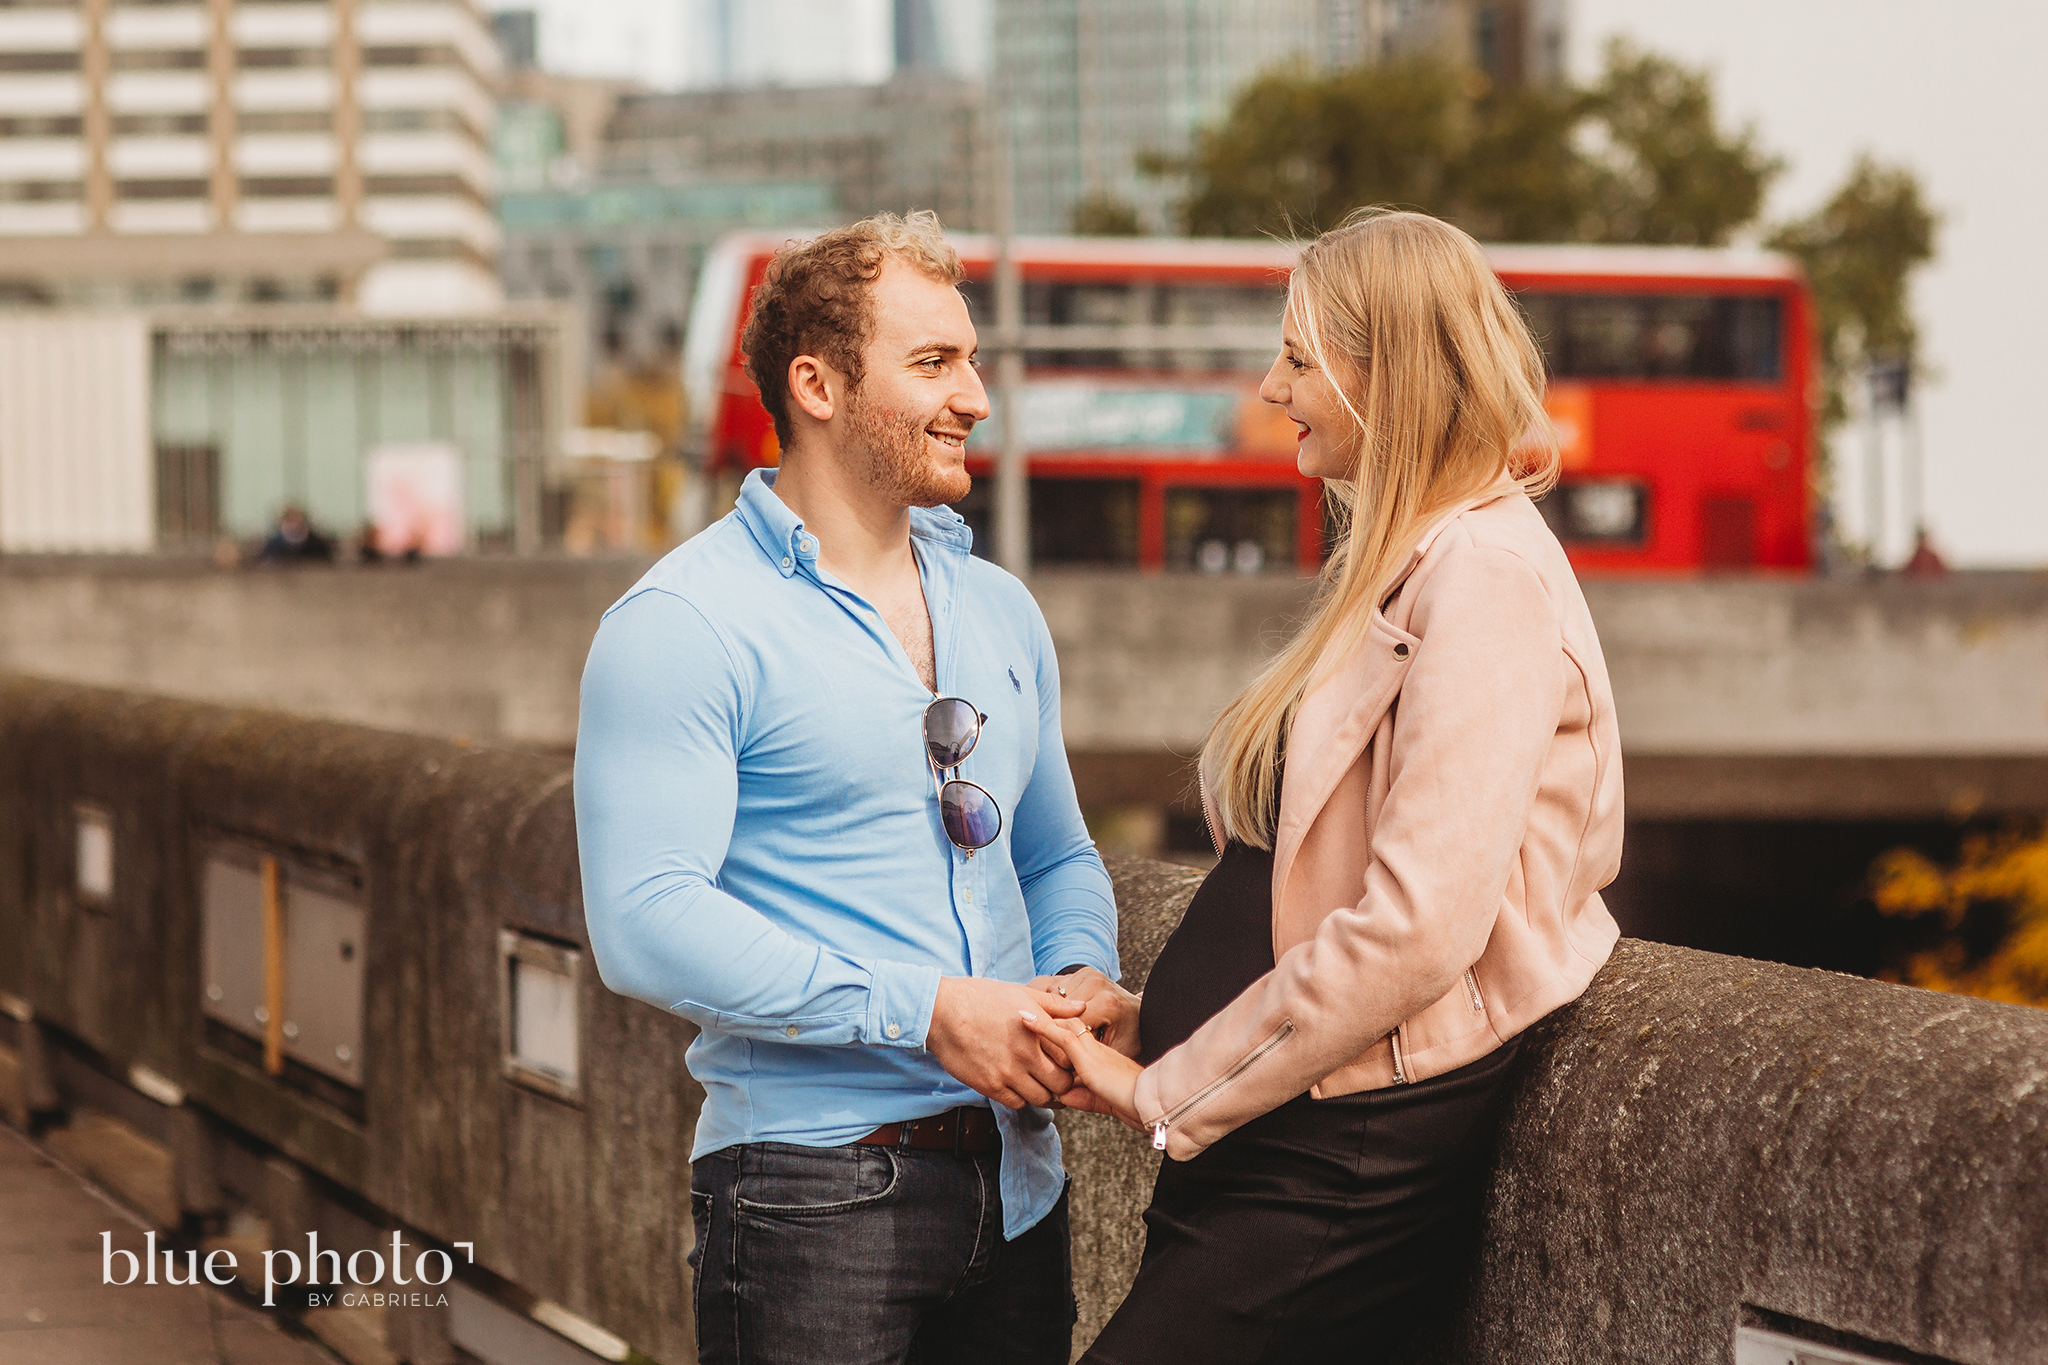 Angelika and Wojtek during their maternity session in South Bank, Central London. The couple is looking at each other and smiling.